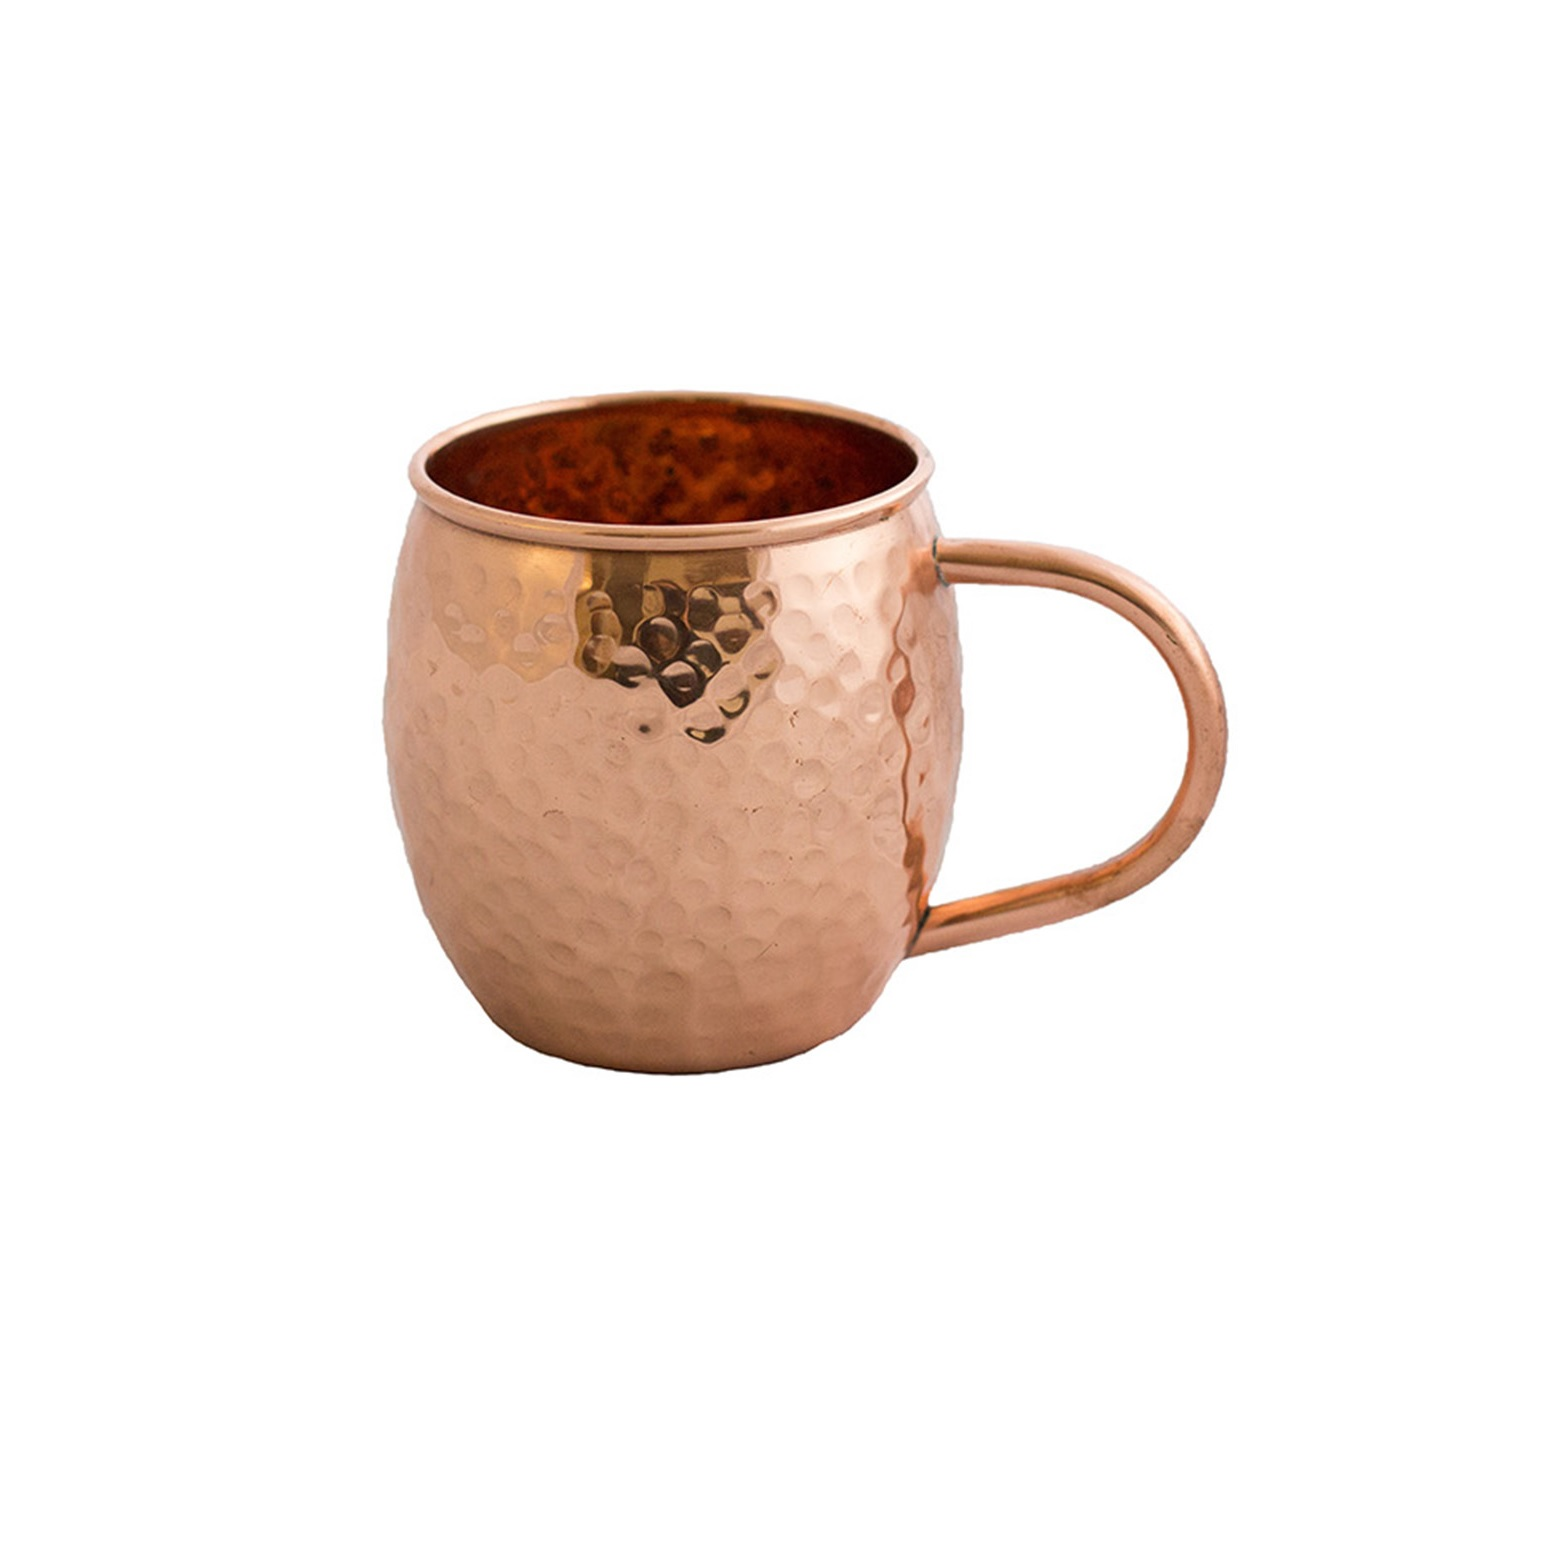 Can You Drink Coffee Out Of A Moscow Mule Mug